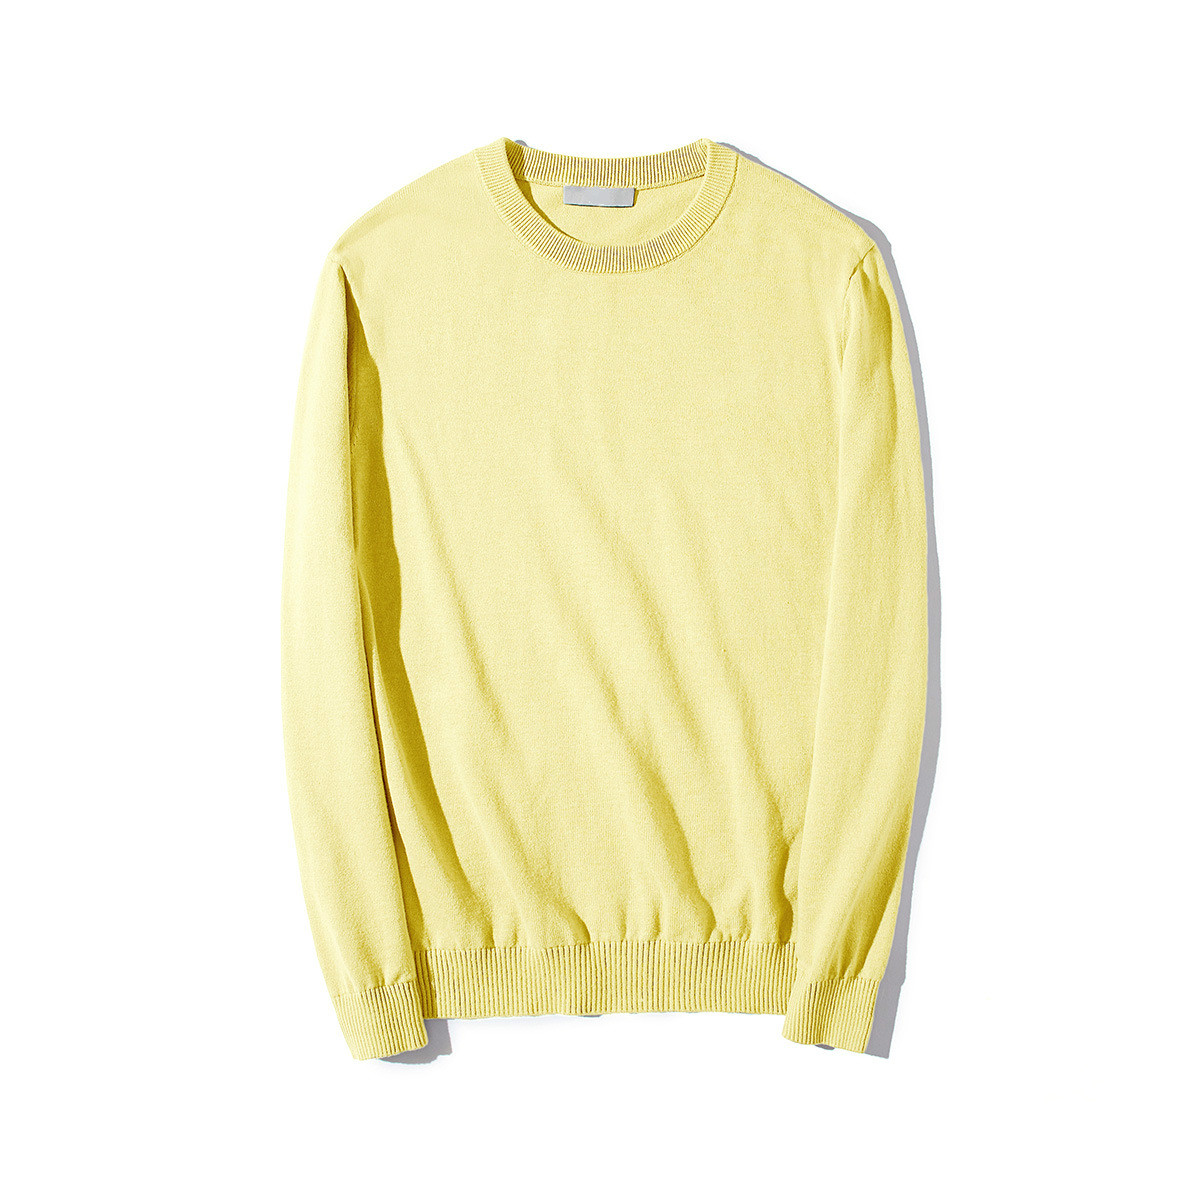 Thin Light Yellow Sweater Men Autumn Long Sleeve Multi-color Boys Cute Oversized Sweaters Knitted Pullover Male Fashion Knitwear